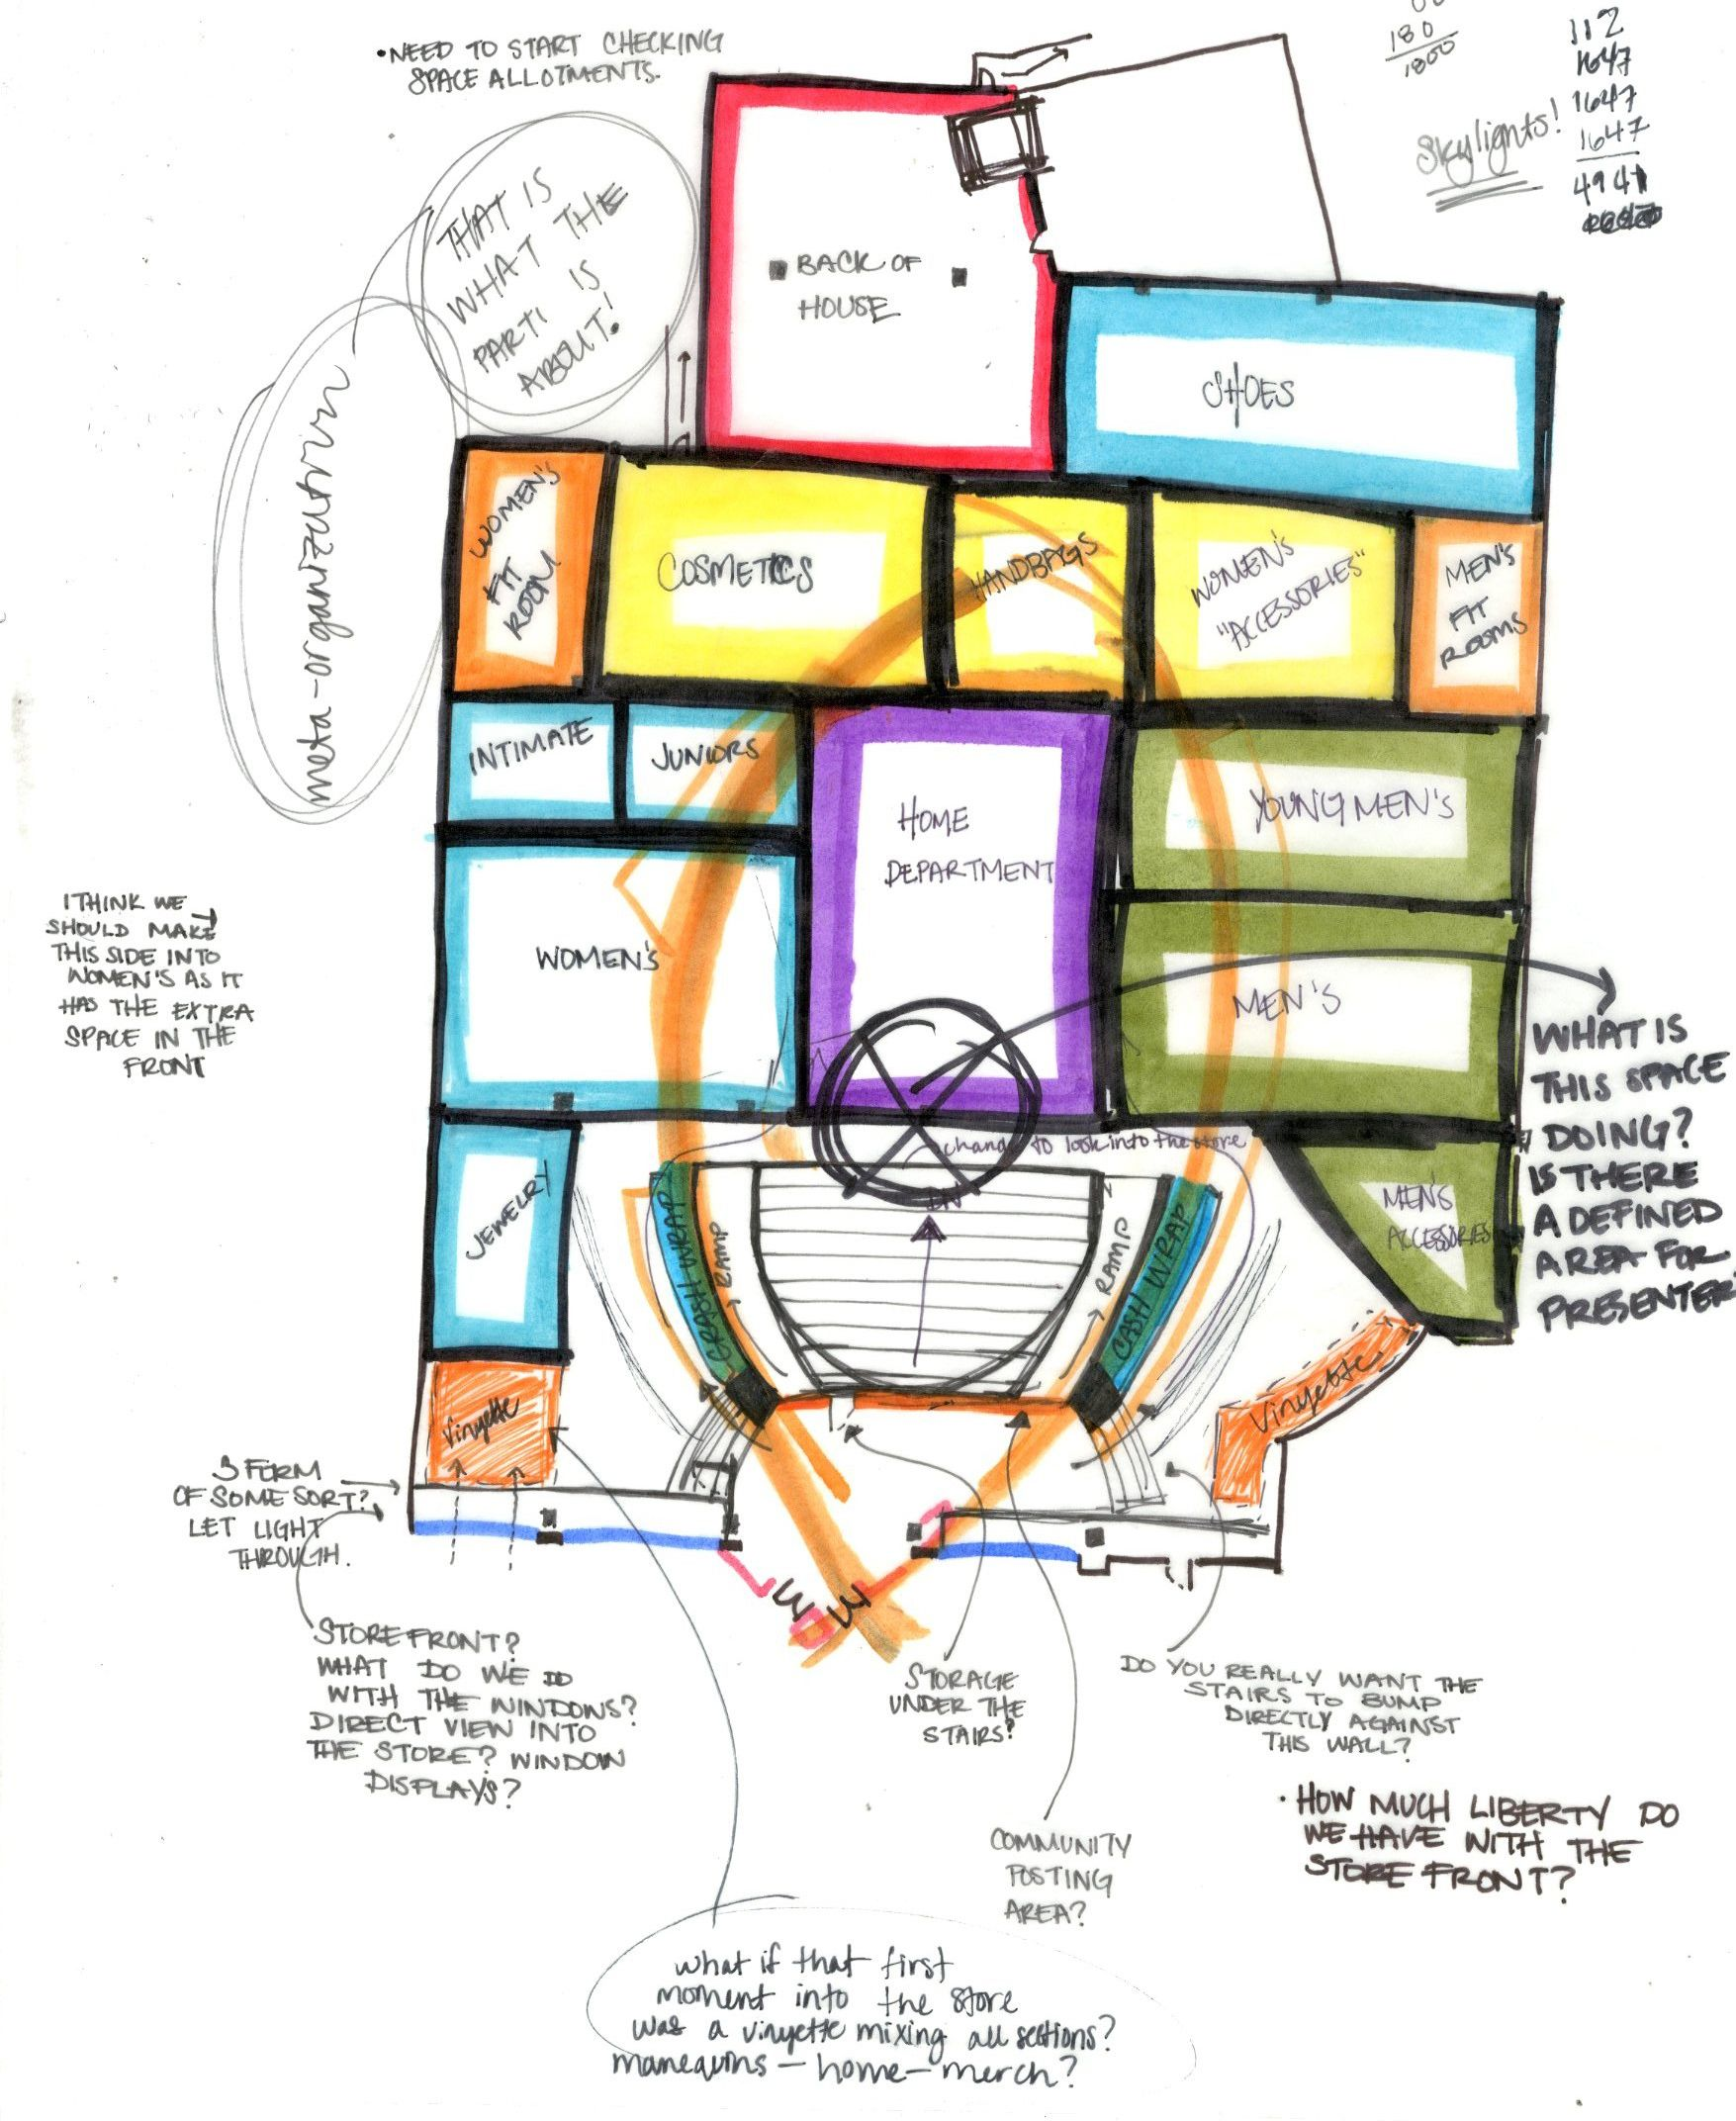 Zoning Diagram Interior Design 1993 Ford Ranger Xlt Radio Wiring Senior Studio Emma Fox C3 A2 C2 88 99 Block